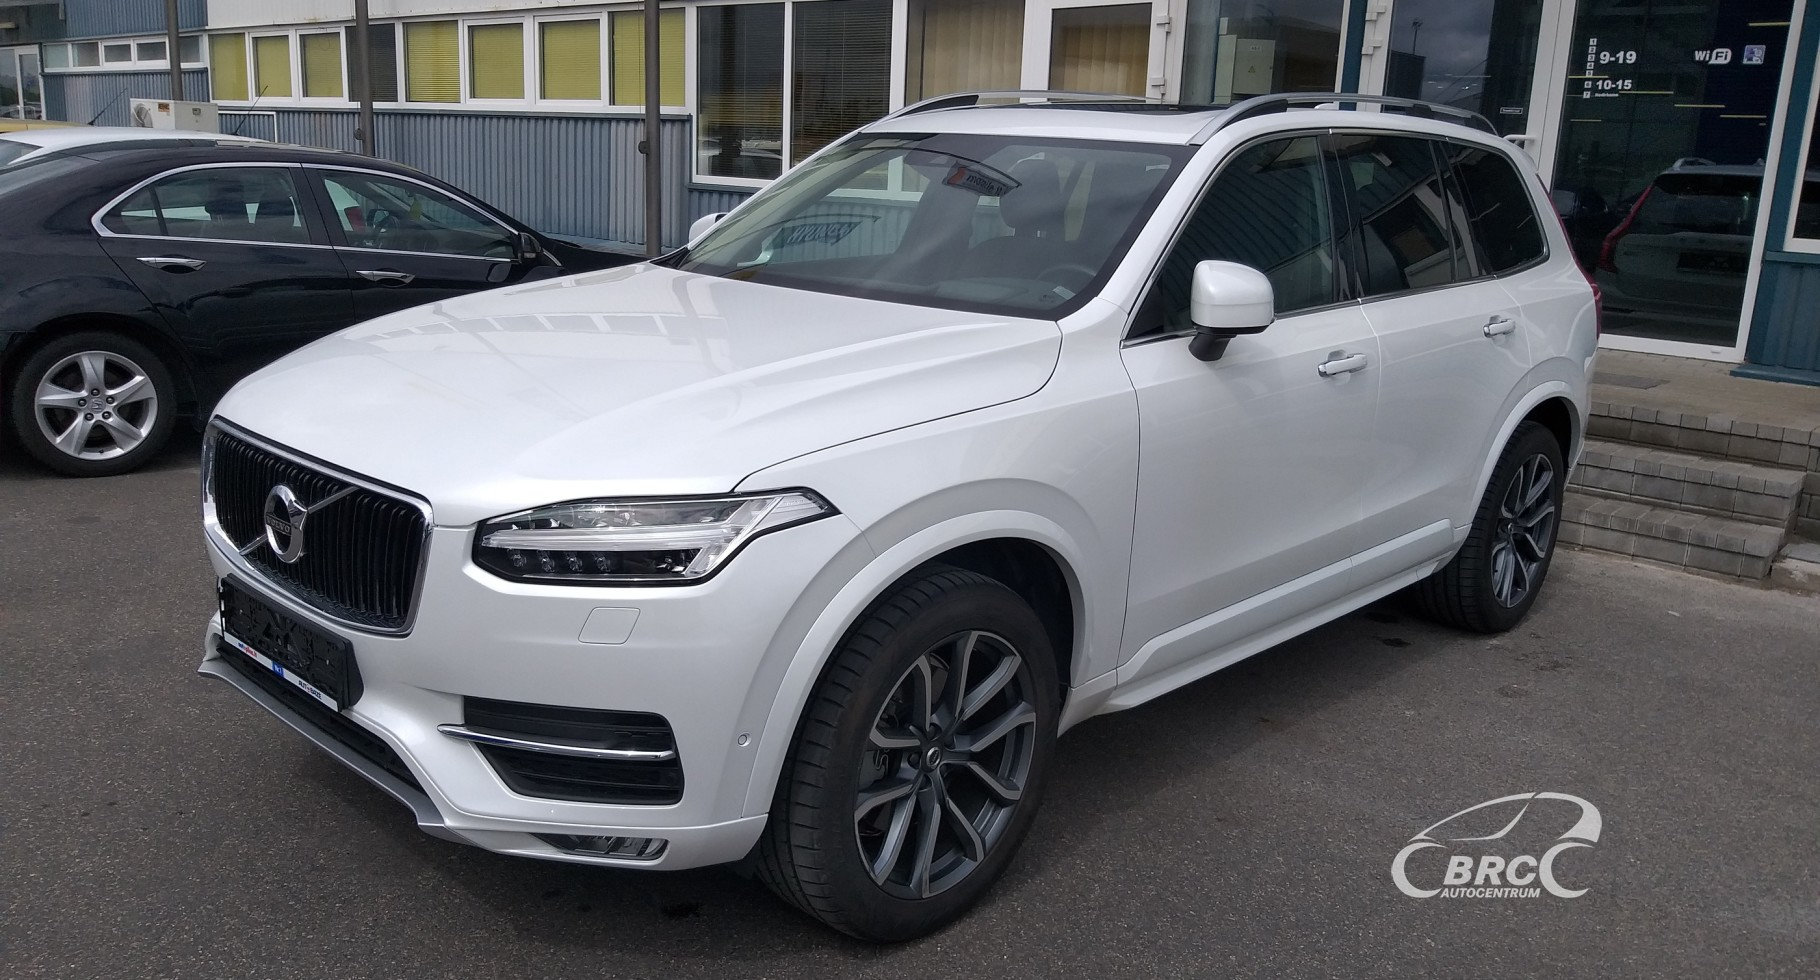 Volvo XC 90 2.0 D5 Momentum AWD Geartronic